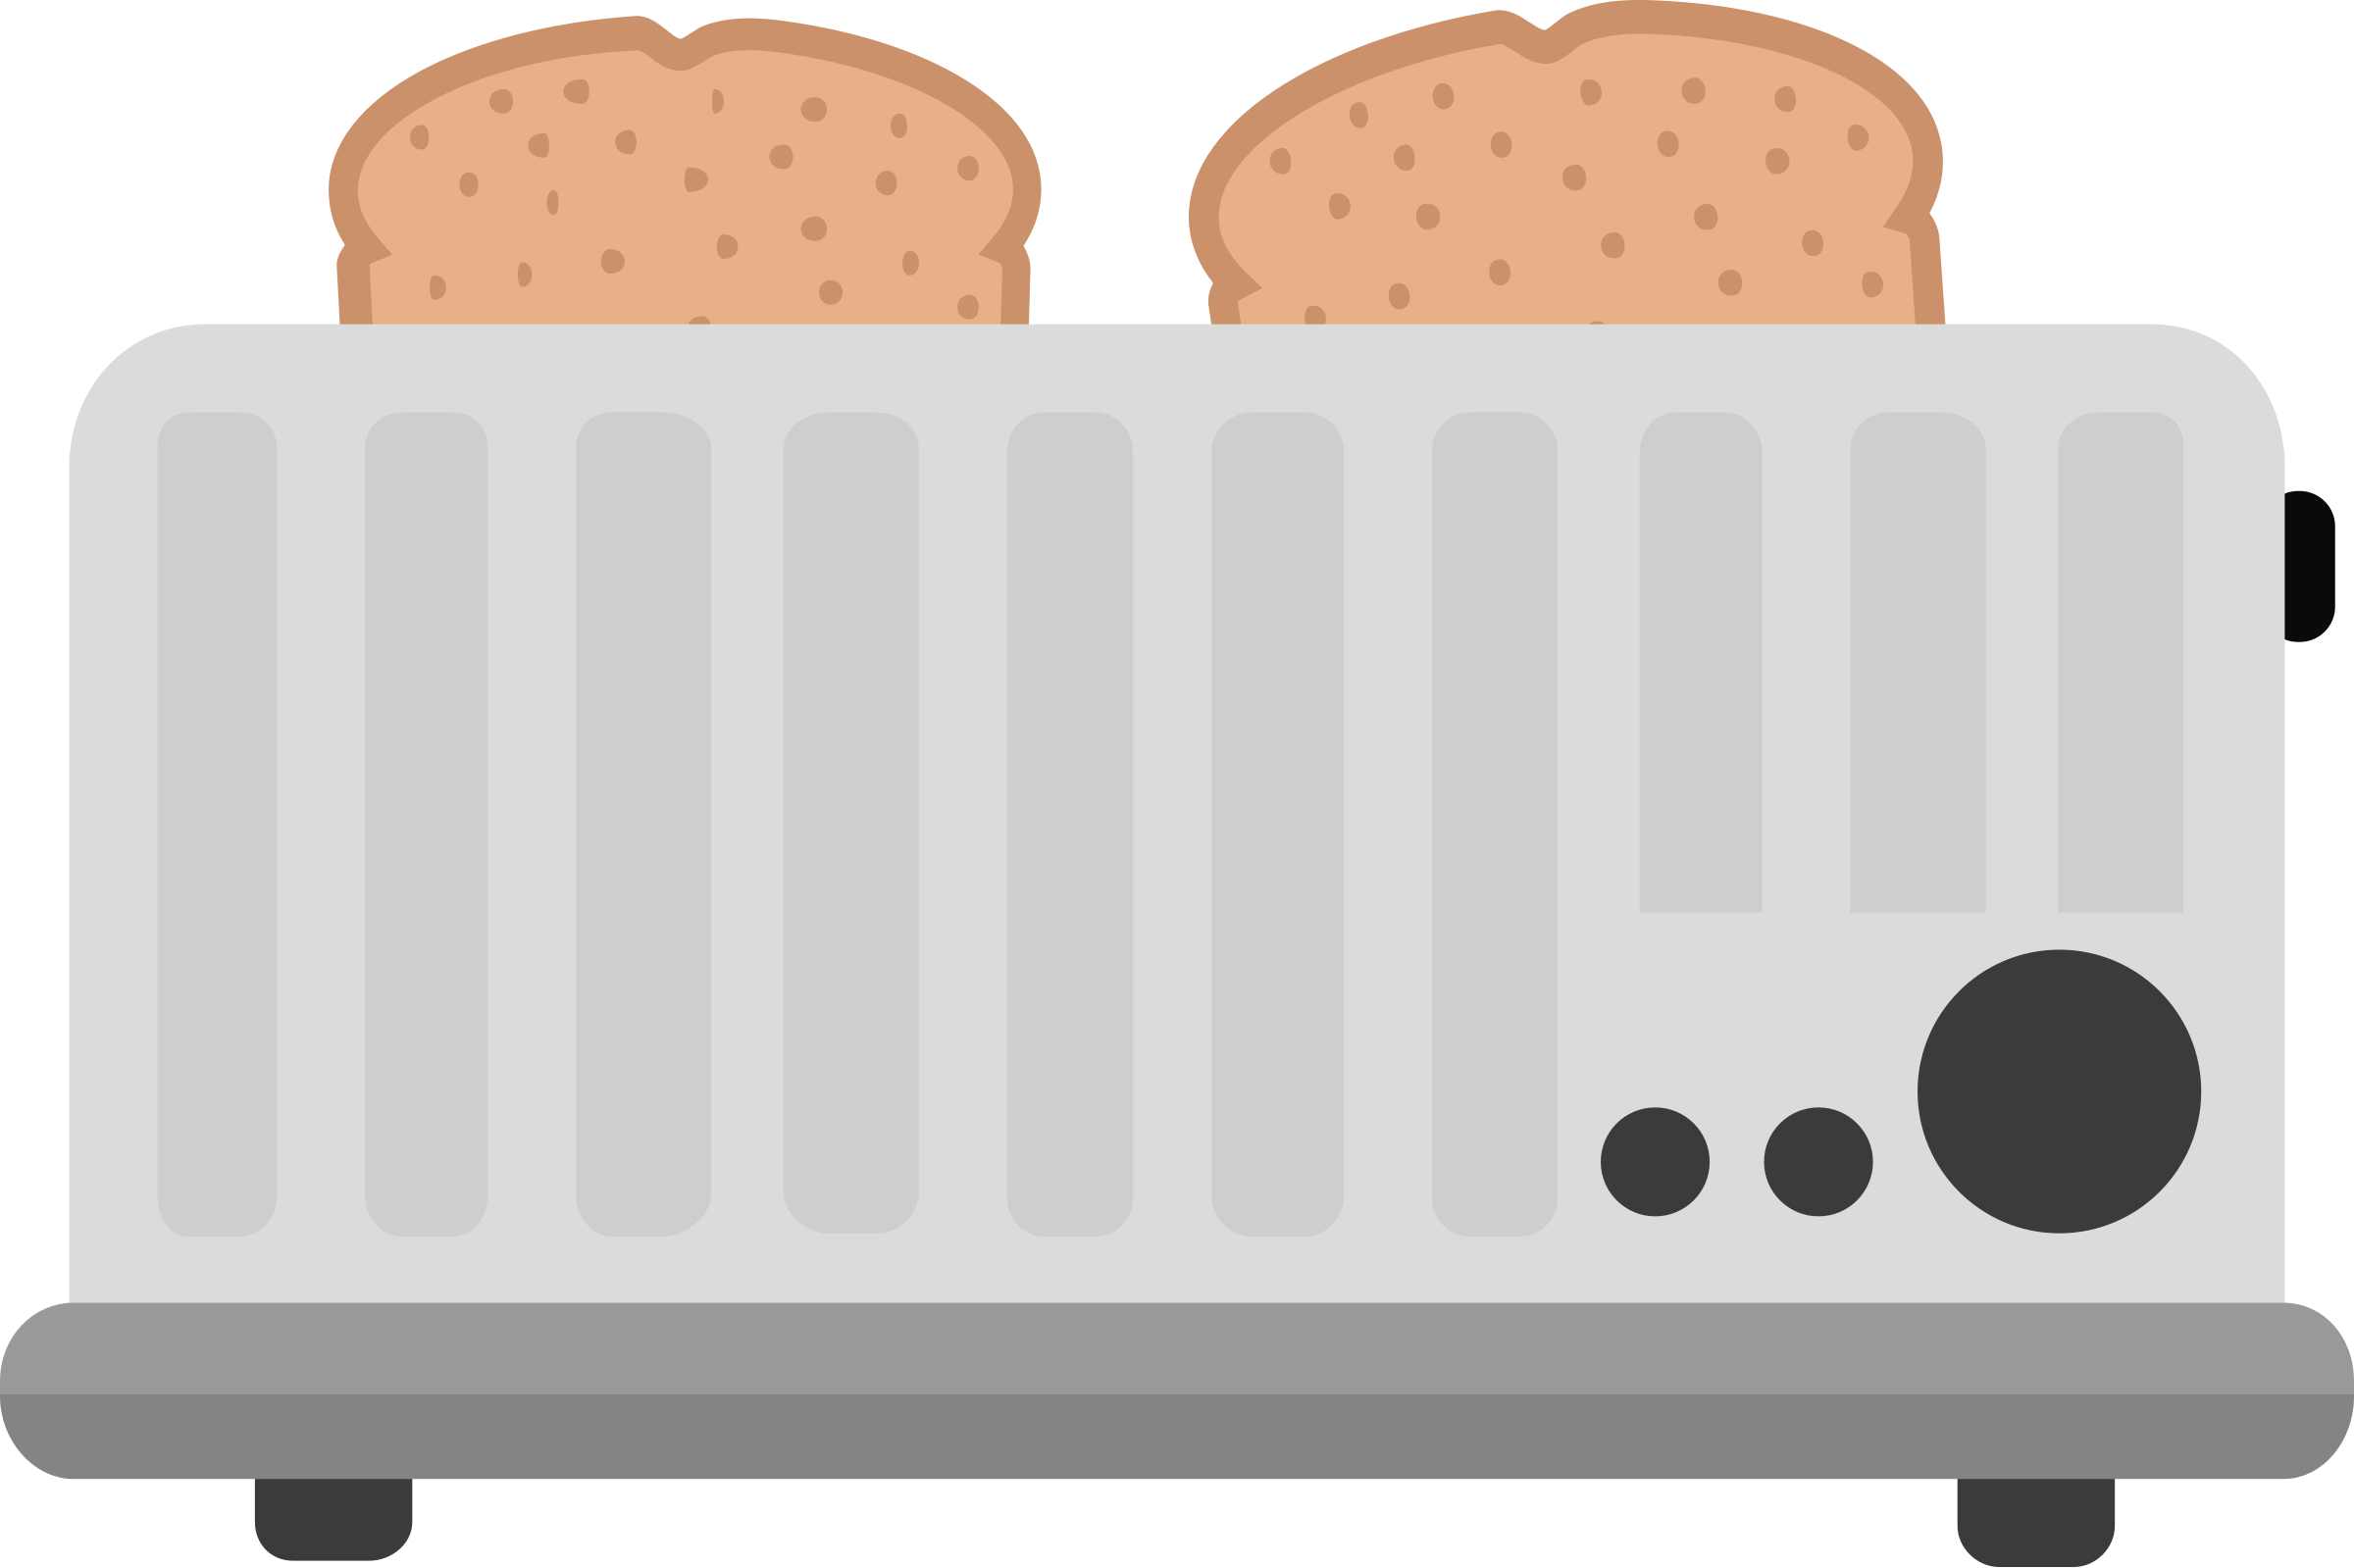 Toaster clipart breakfast toast. With big image png